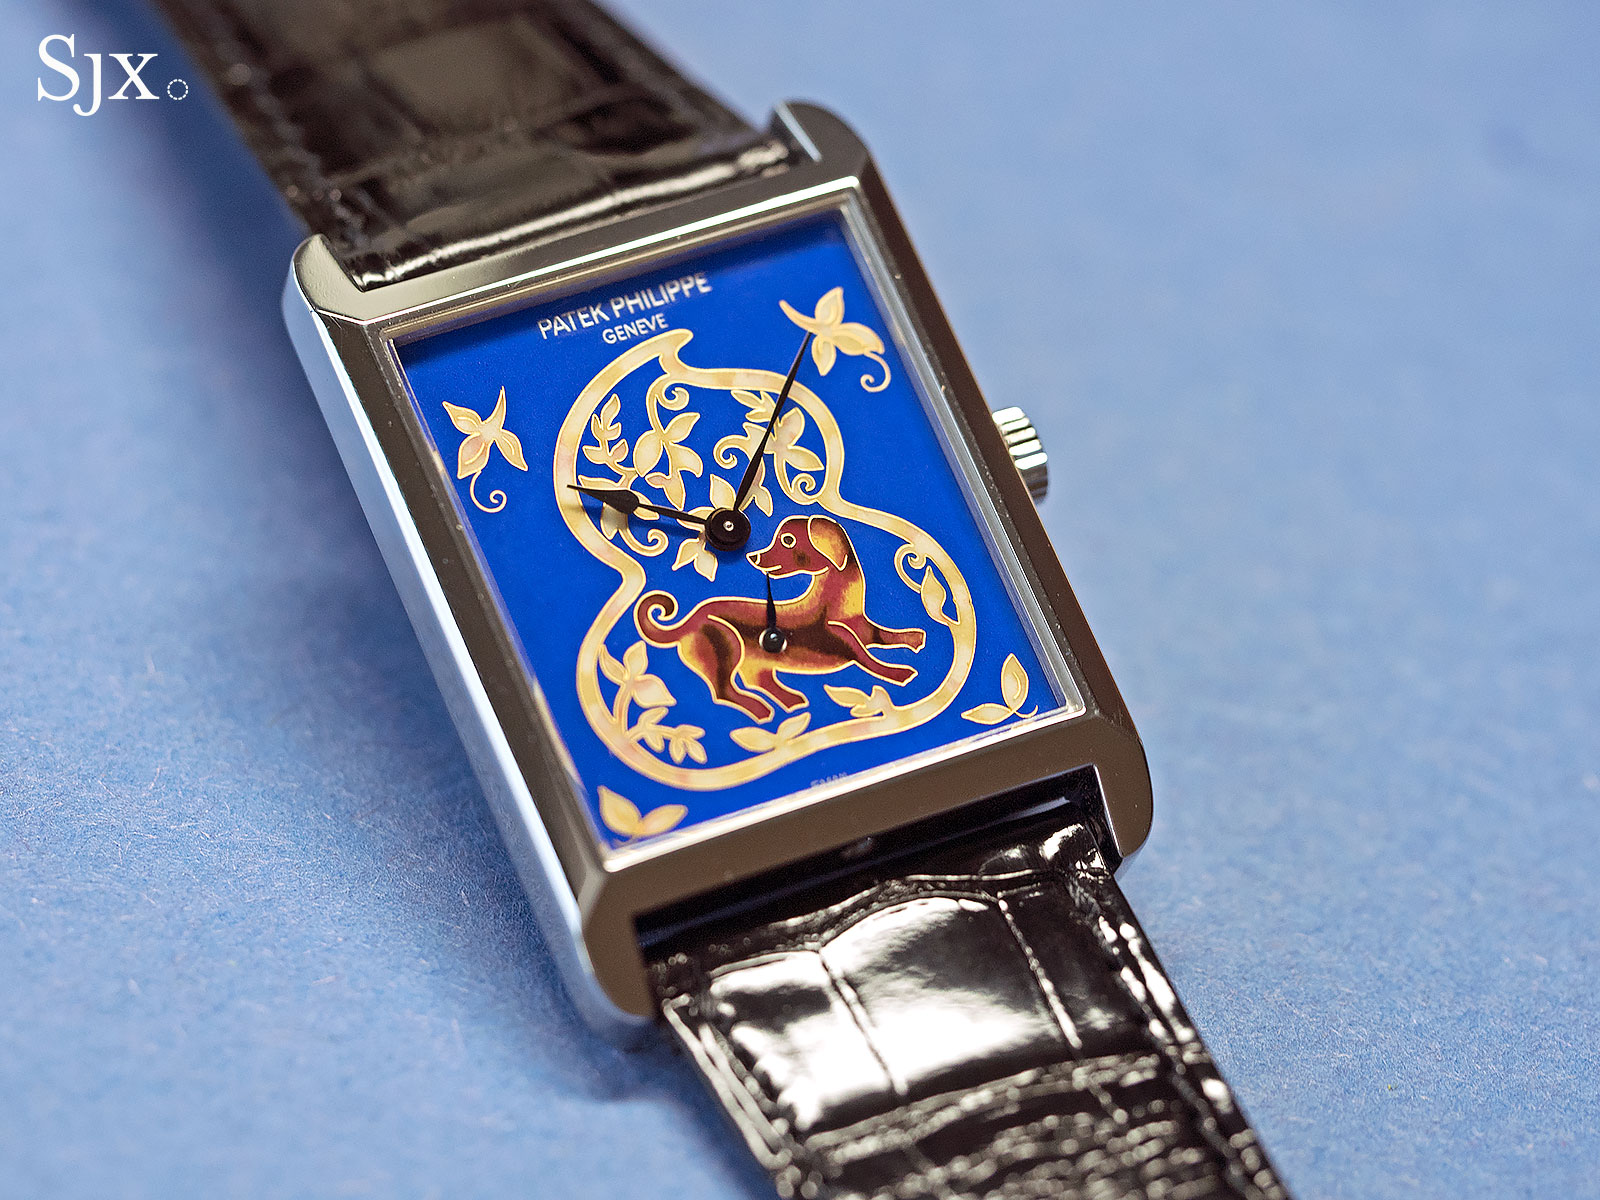 Lot 2814 Patek Philippe ref. 5076 dog cloisonne 1